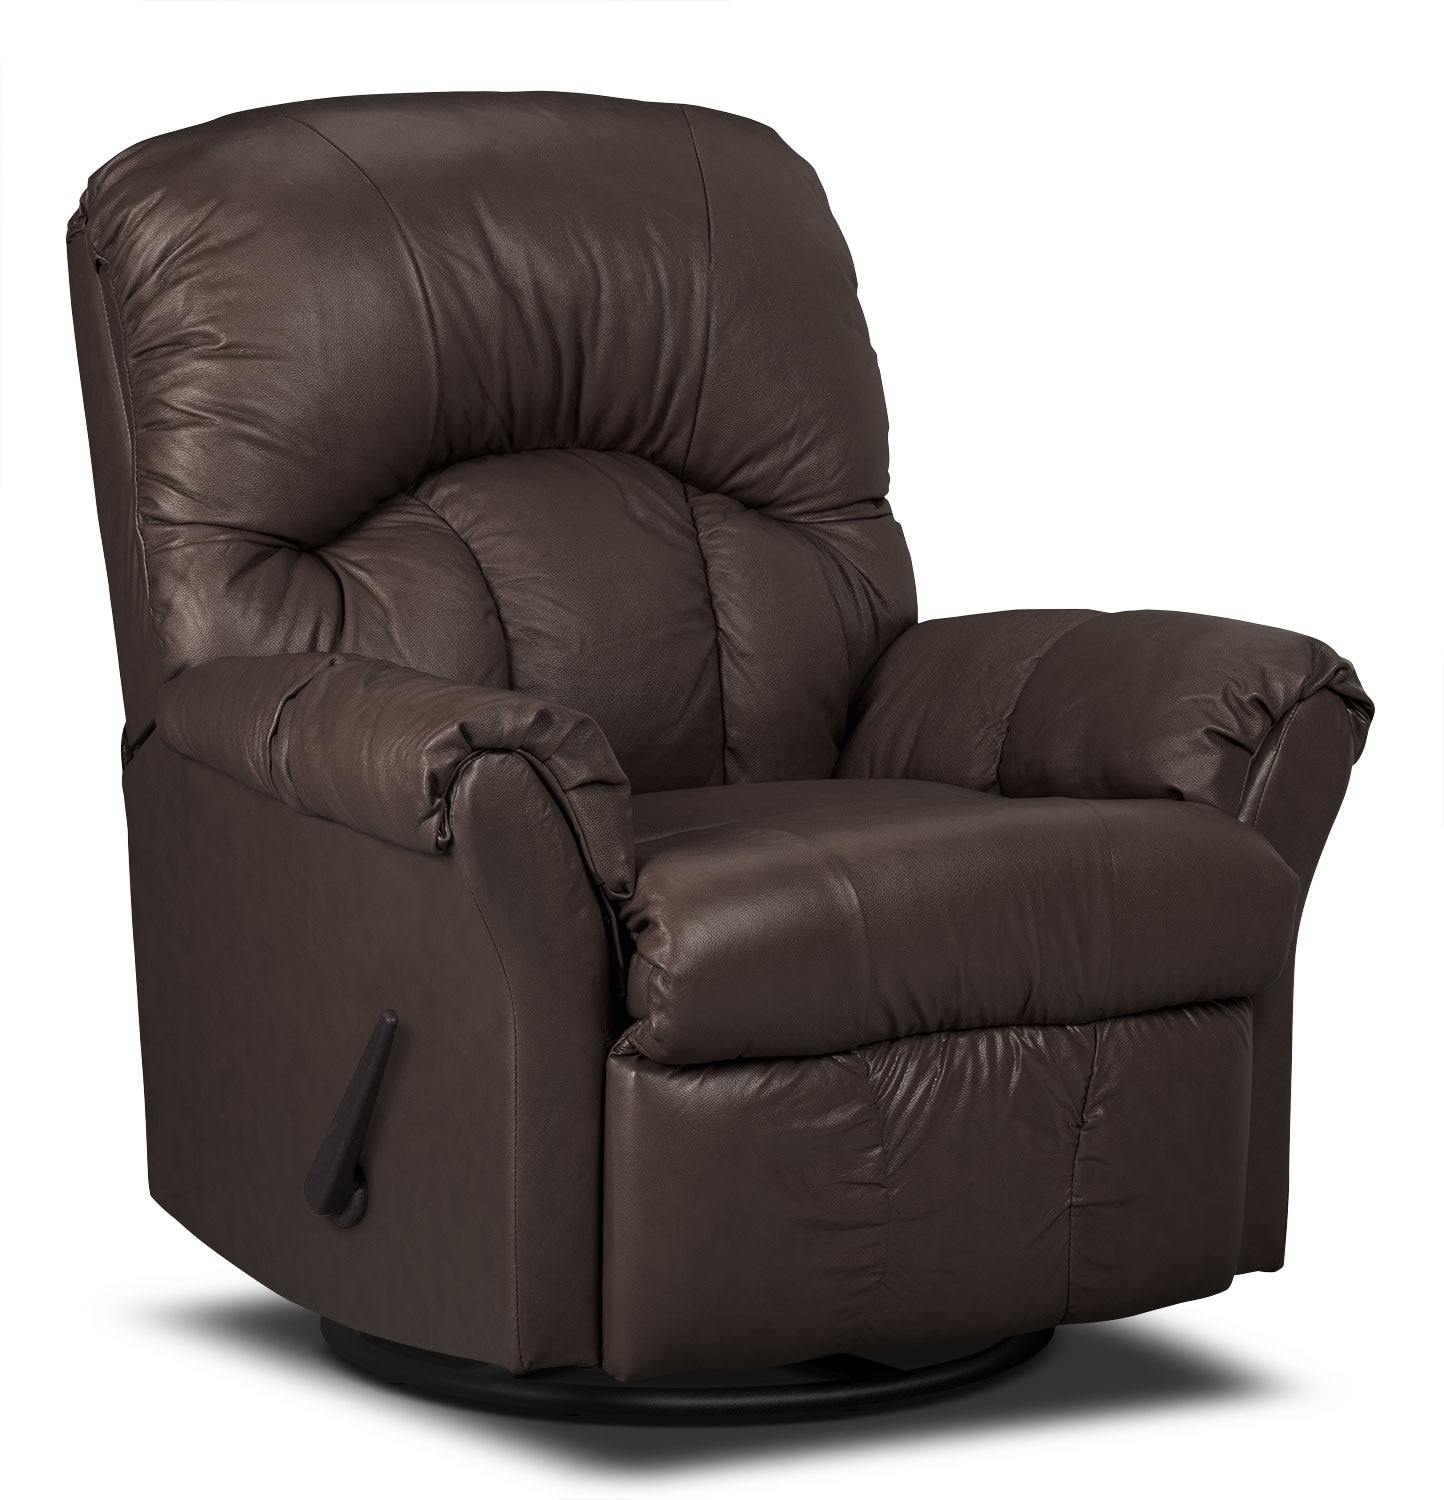 Living Room Furniture - Designed2B Recliner 6734 Bonded Leather Swivel Glider Chair - Walnut